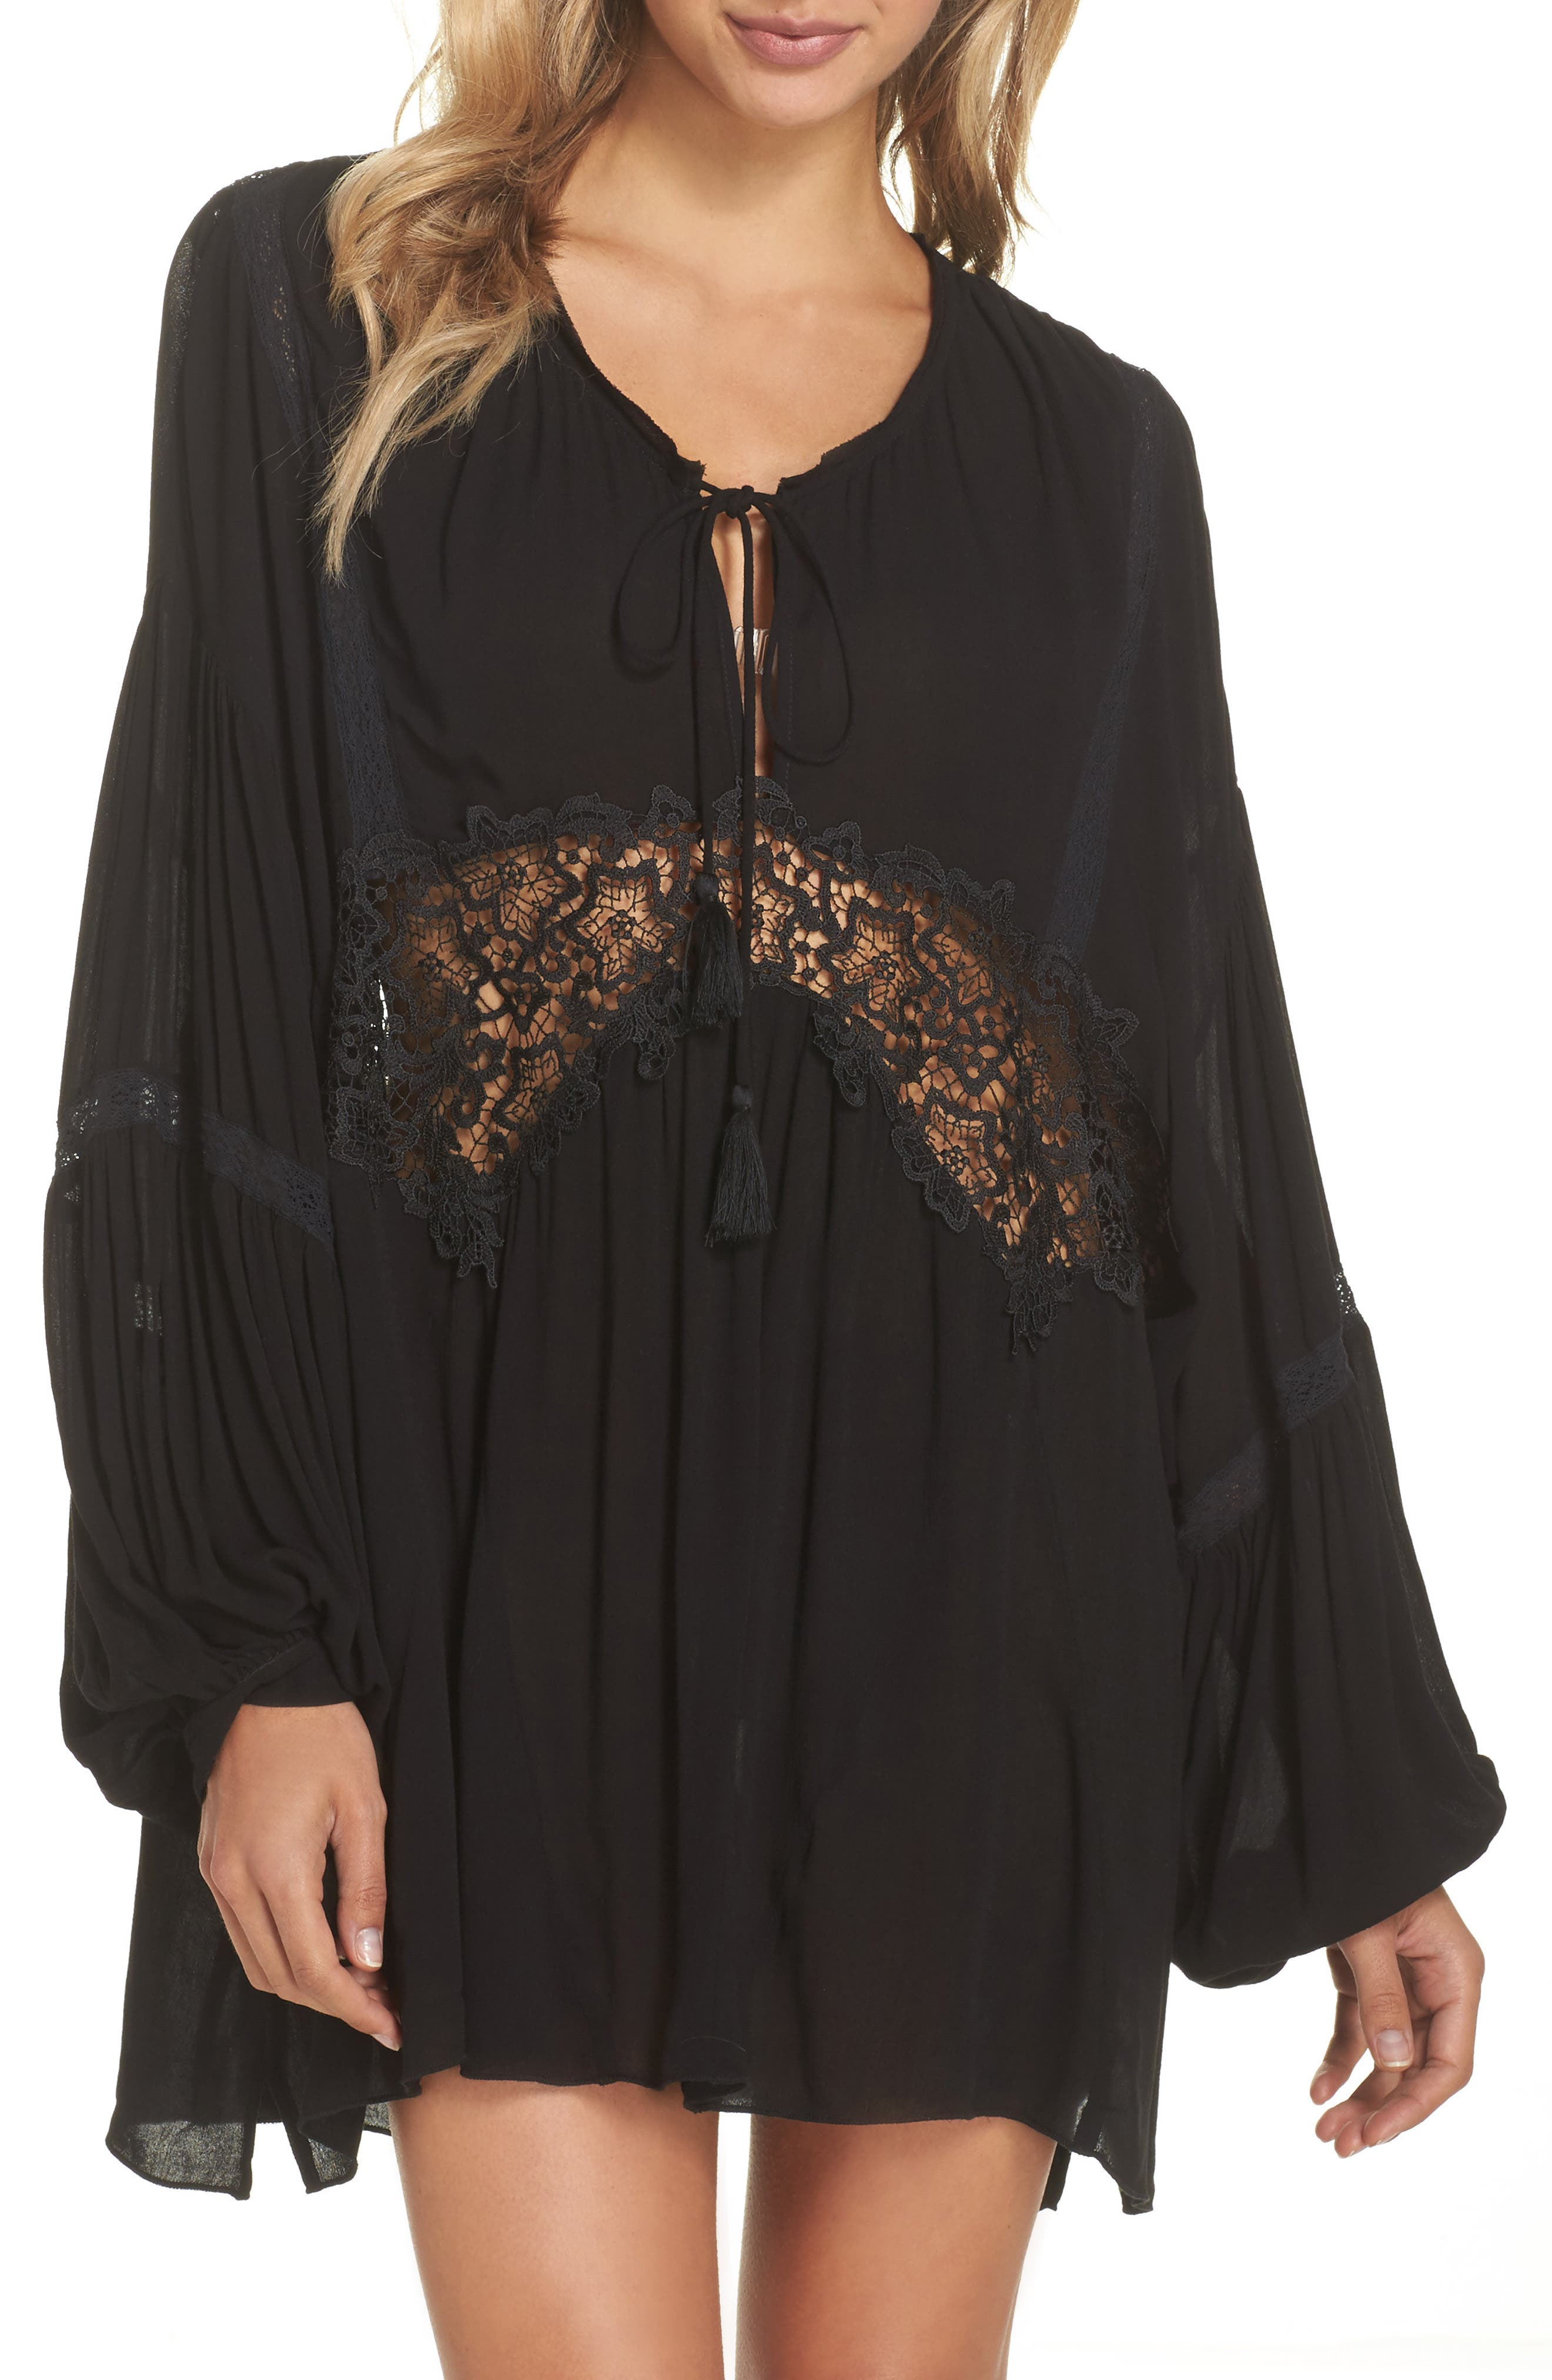 Intimately FP Sleepin' 'n' Dreamin' Lace Inset Top,                         Main,                         color, 001